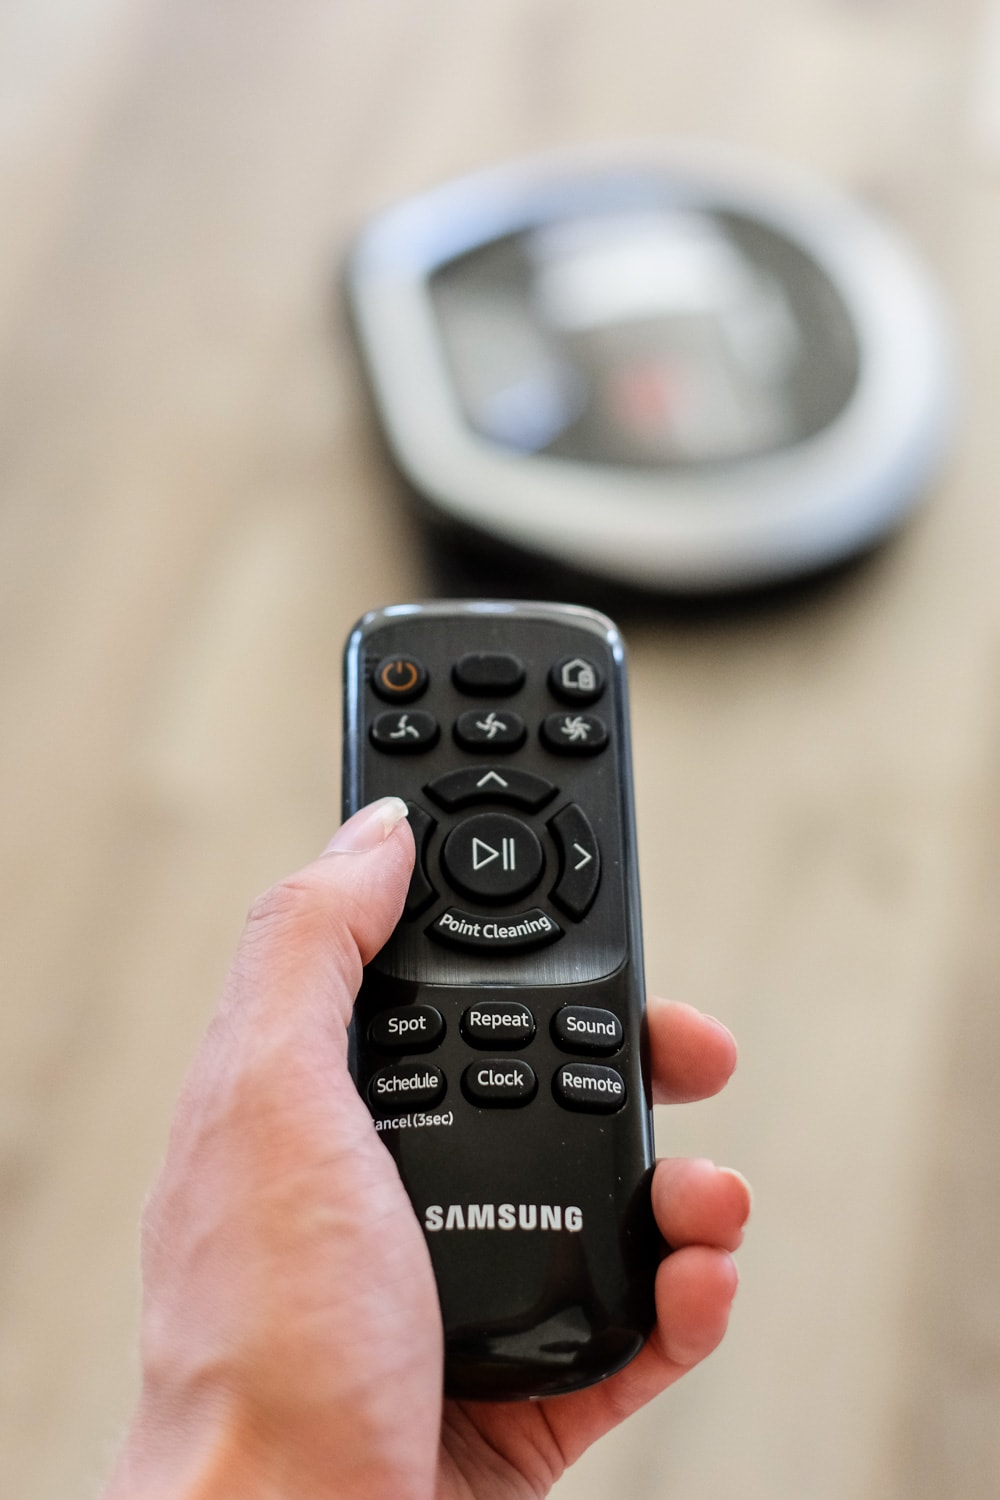 remote control to the samsung powerbot R7260